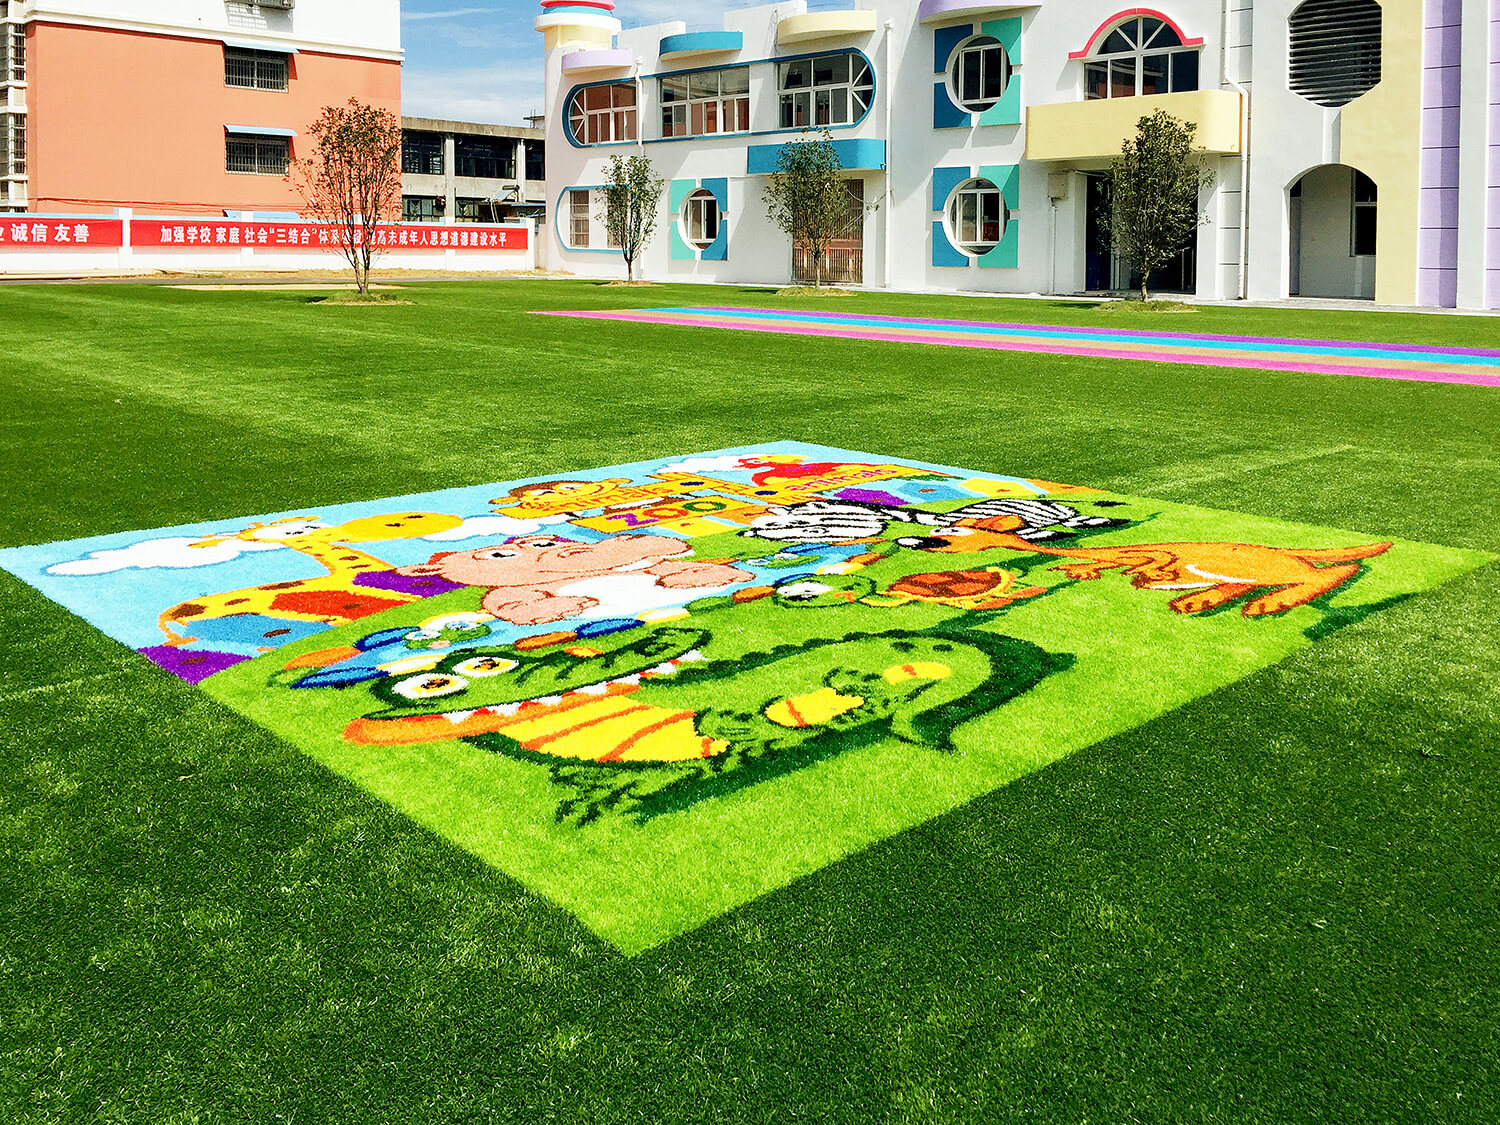 art grass-logo graphic name artificial grass field